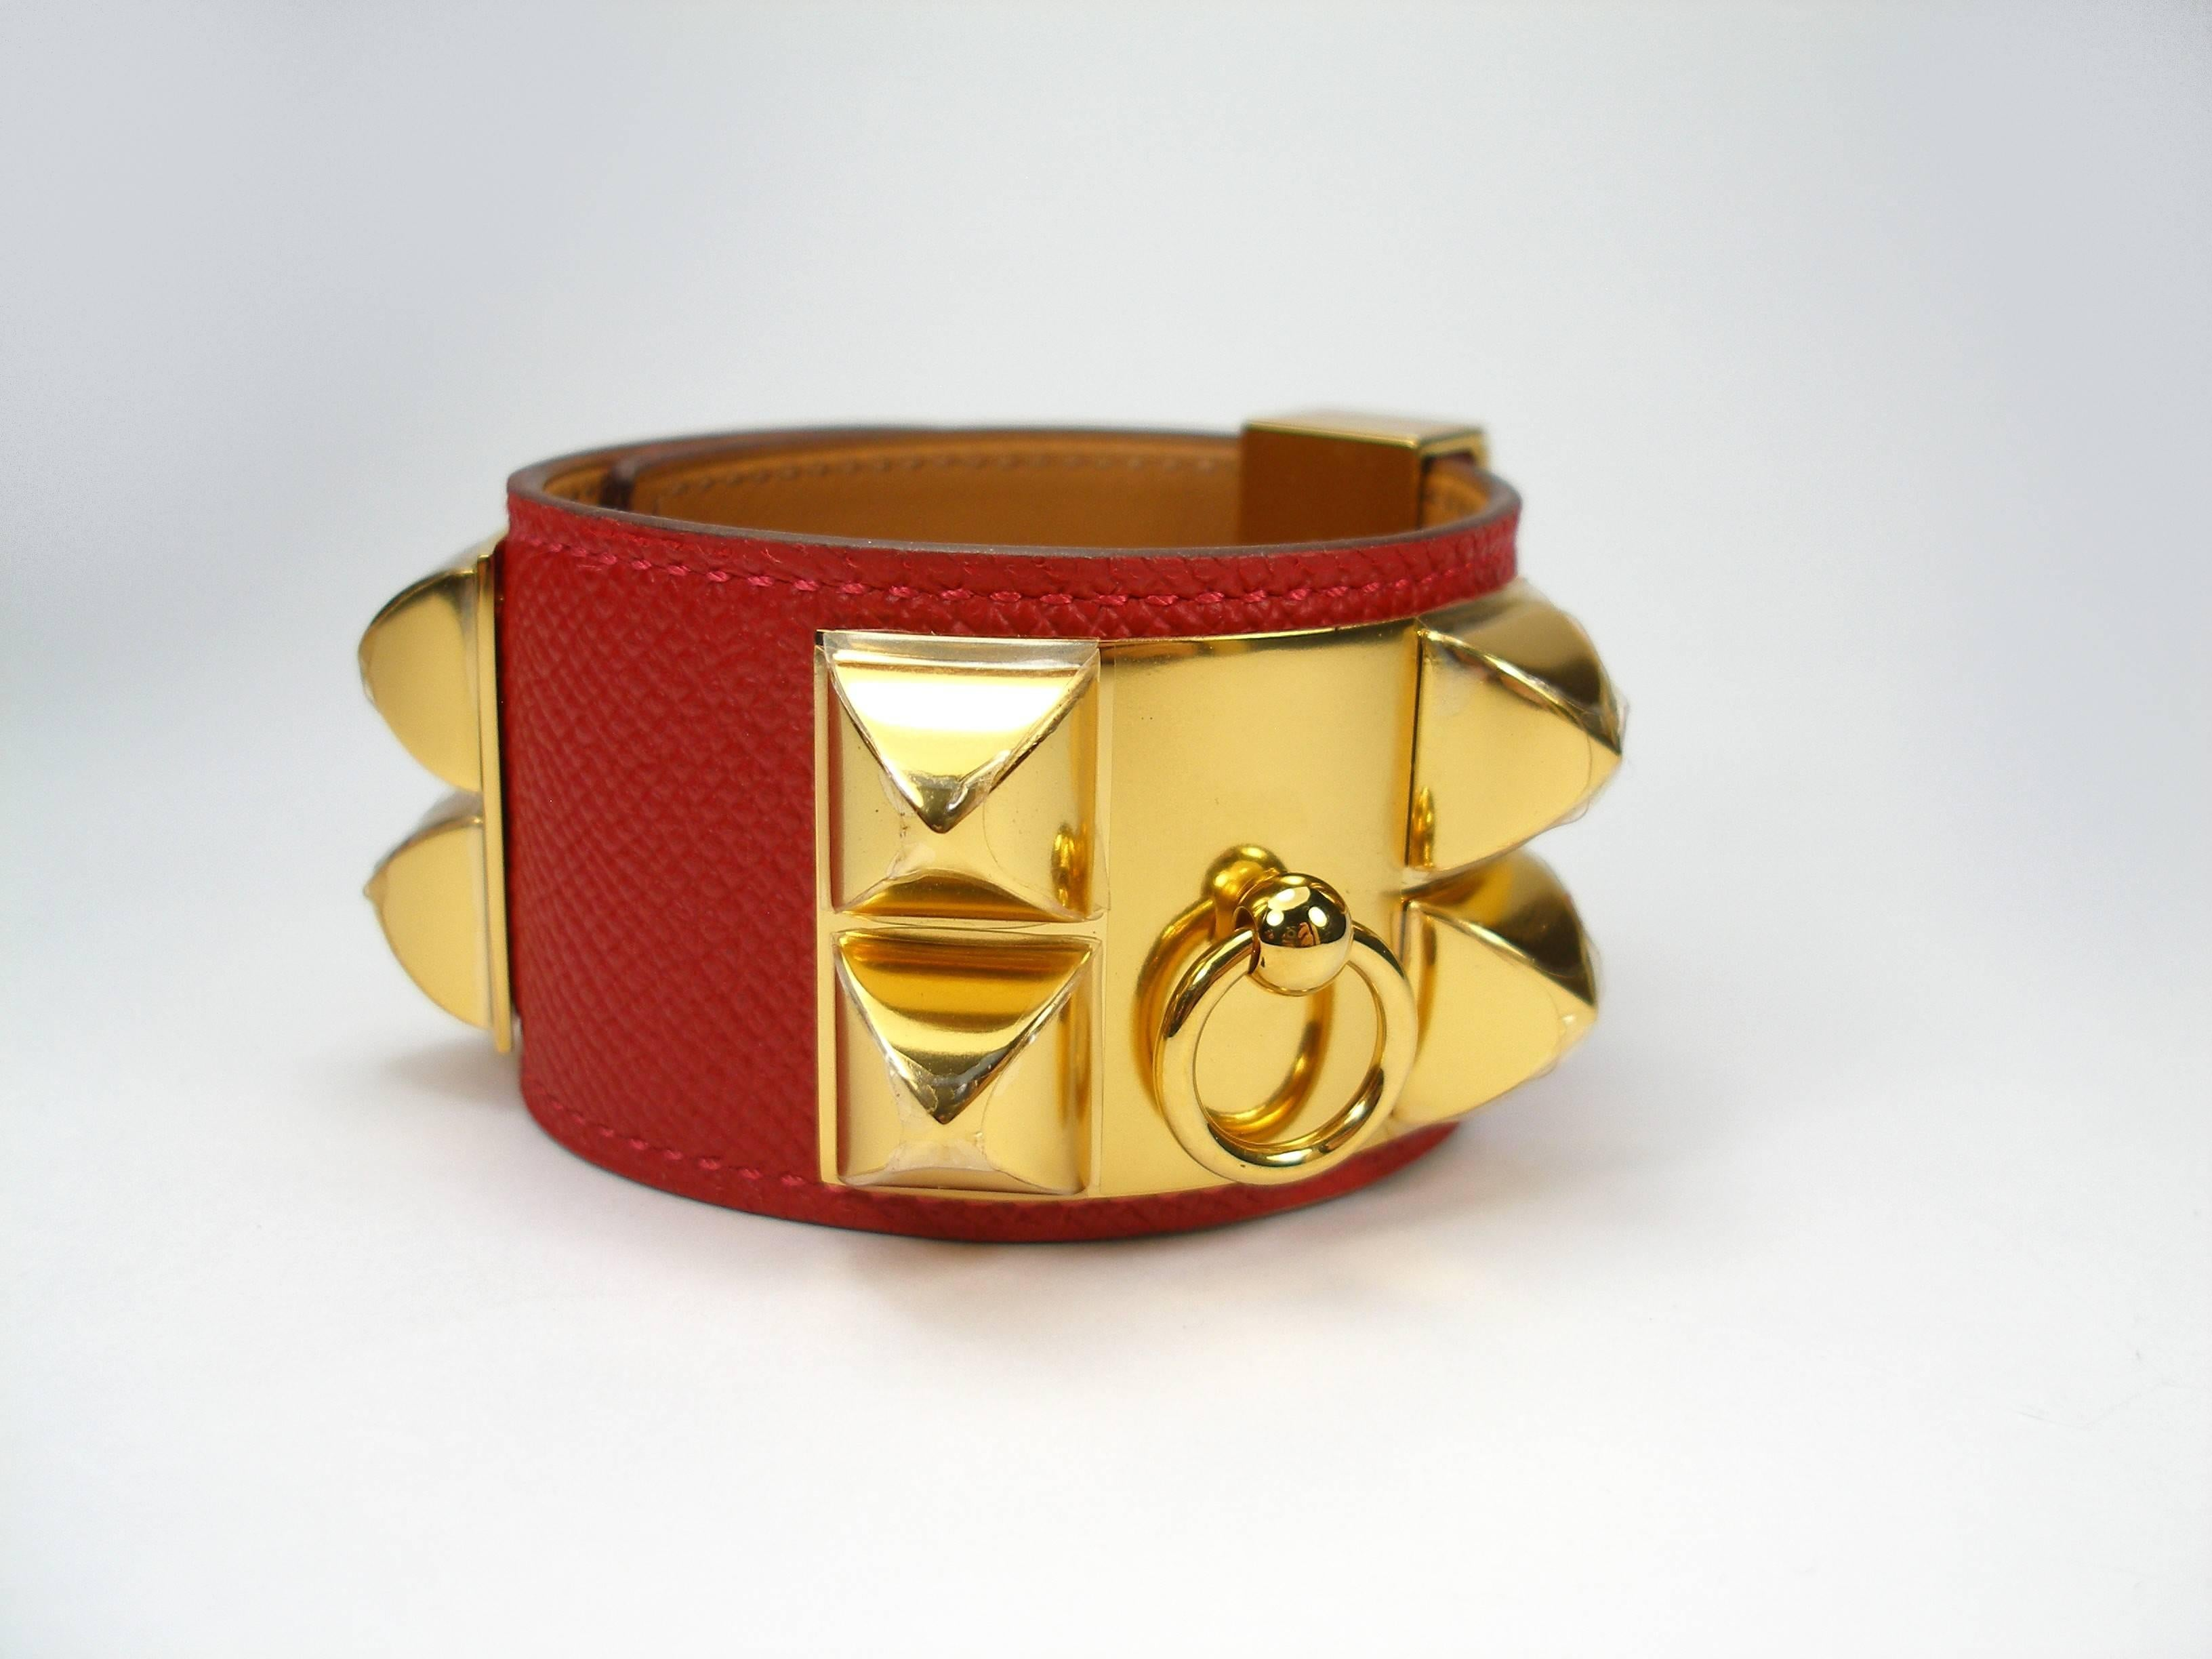 hermes collier h crocodile de crocodilealligator bracelet cdc rouge alligator img phw red chien